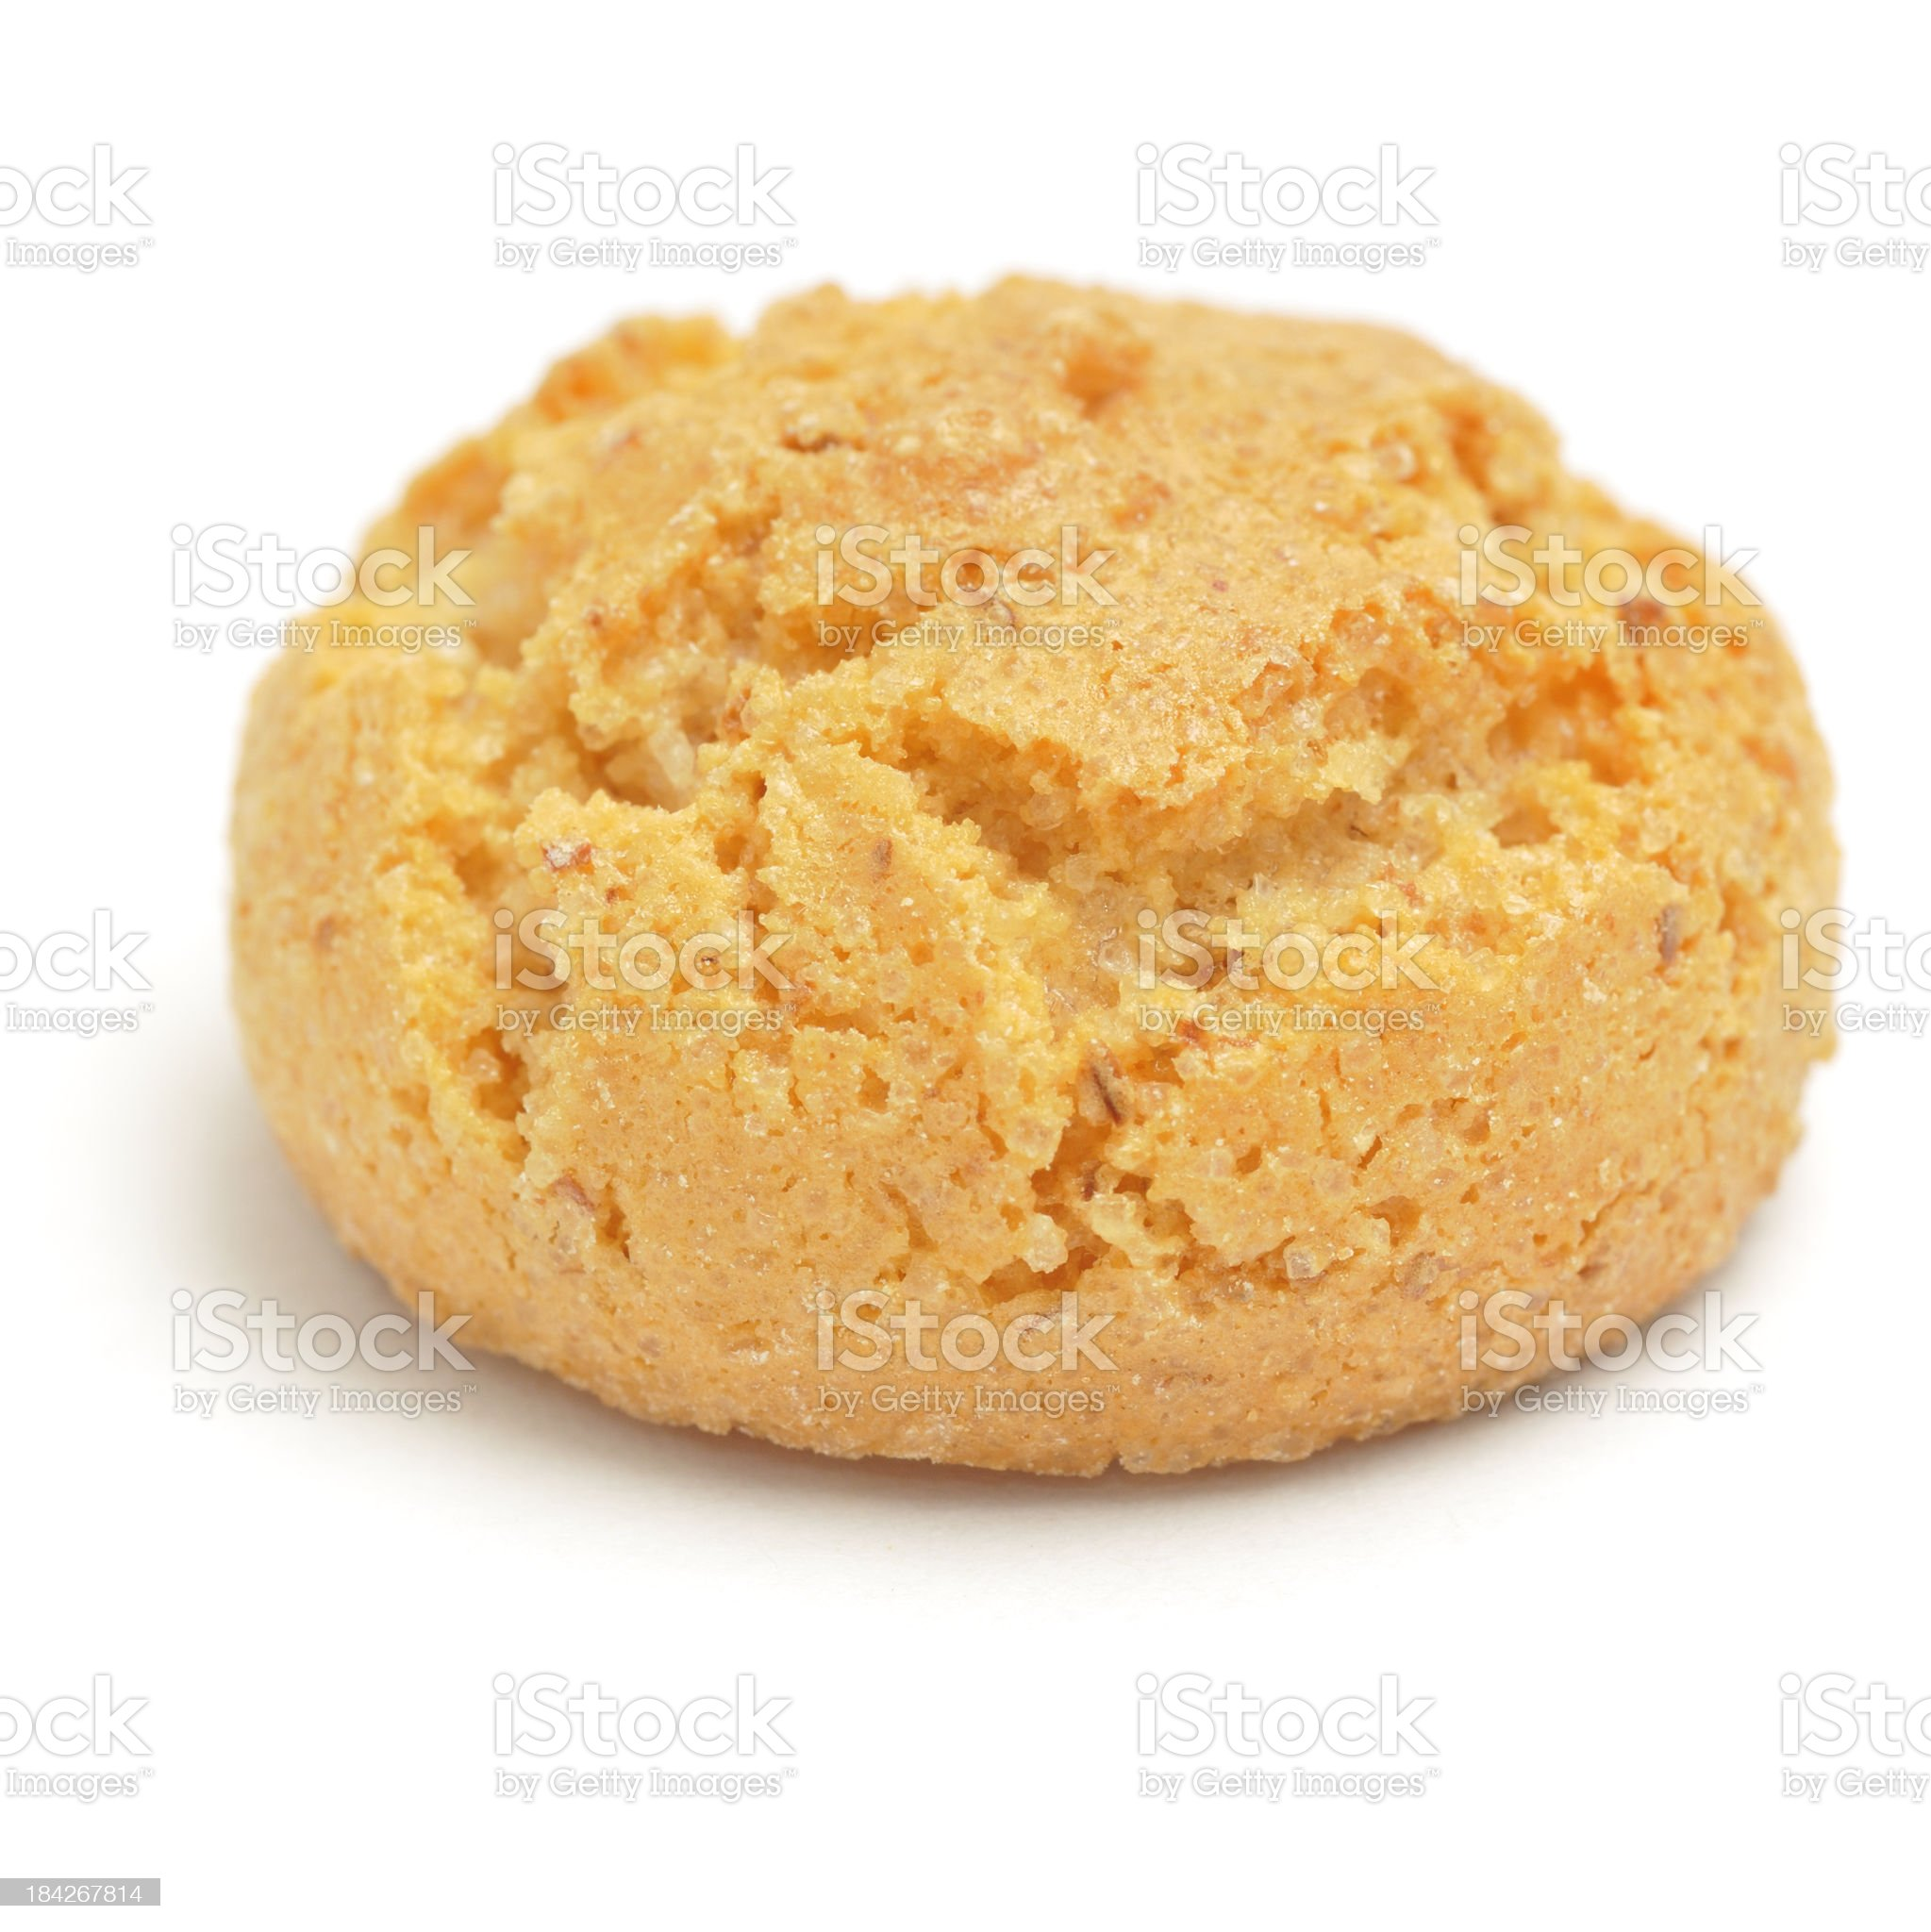 Amaretti biscuit royalty-free stock photo